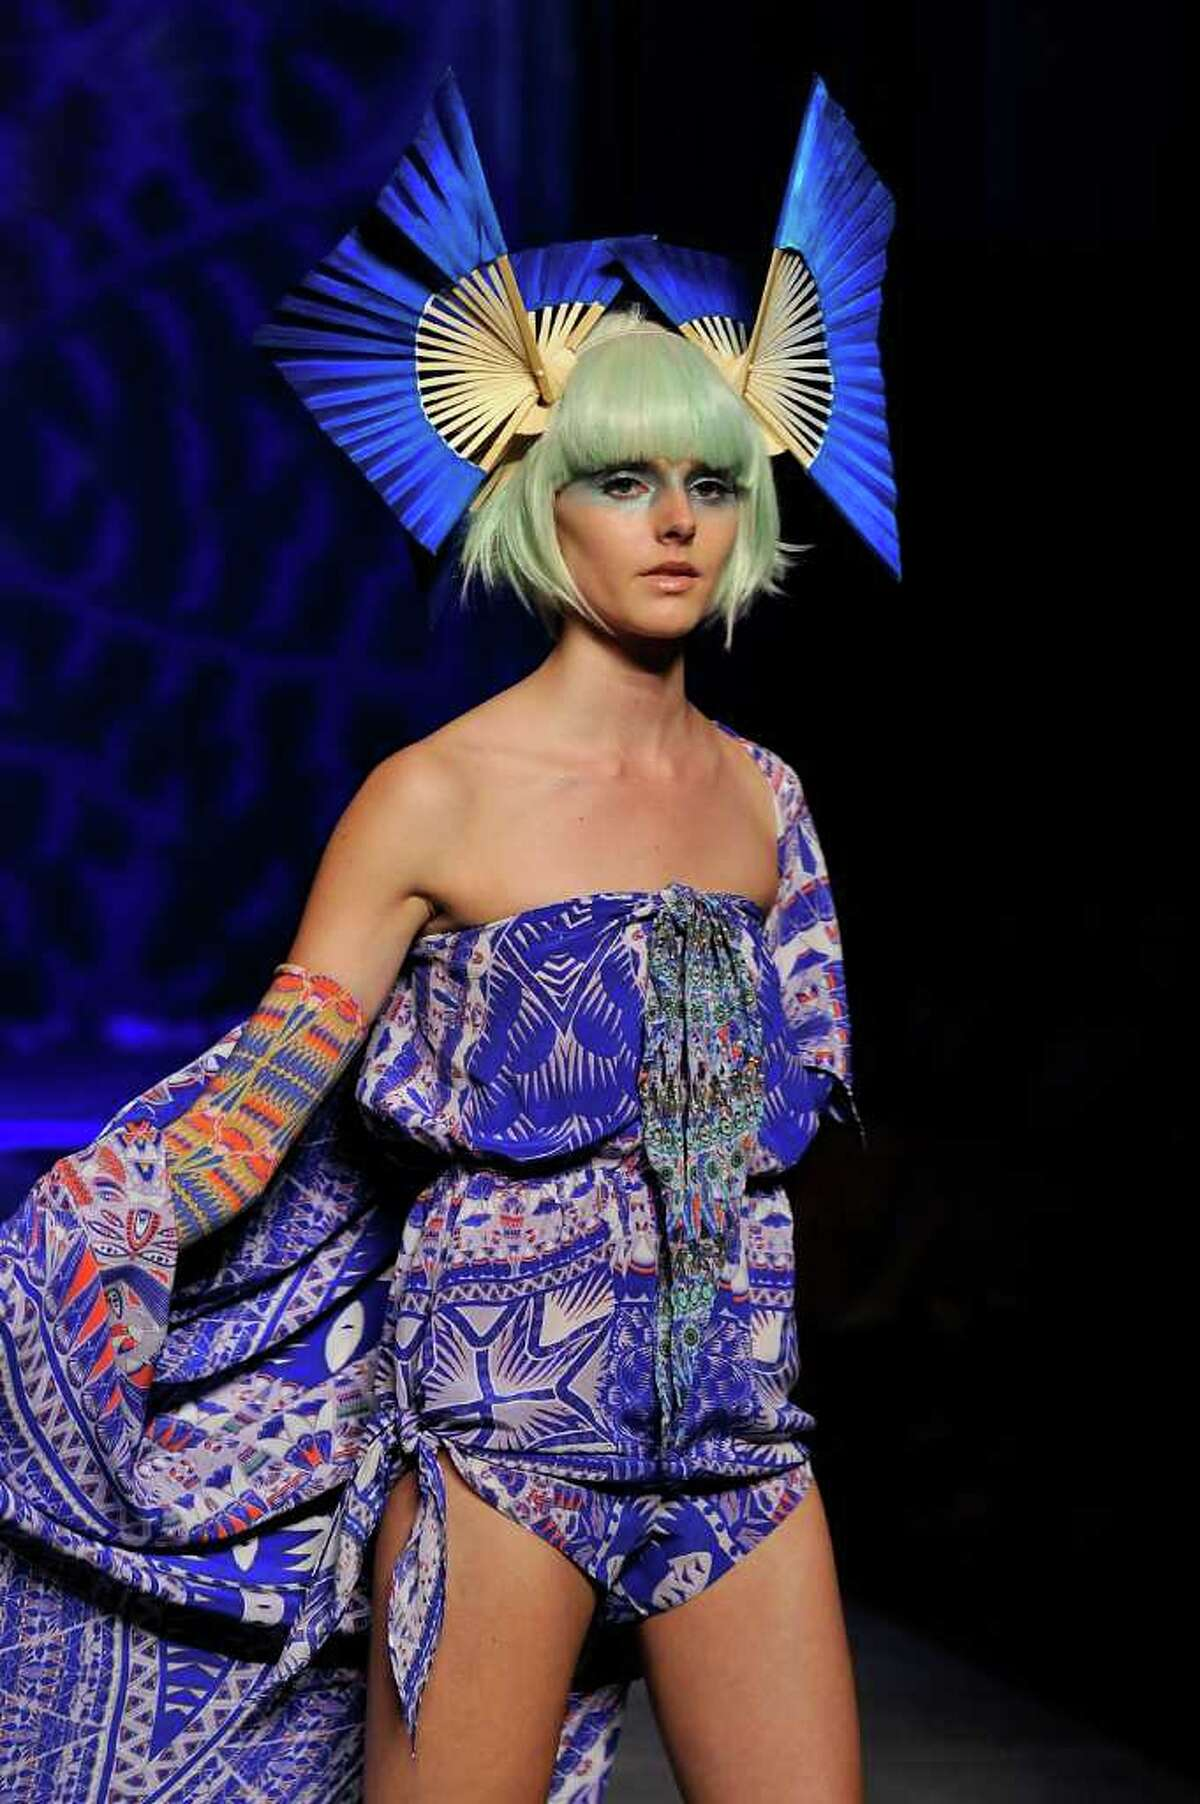 A model showcases designs on the catwalk by Labyrinth By Camilla during the Labyrinth By Camilla show as part of Mercedes Benz Fashion Festival Sydney 2011 in Sydney, Australia.